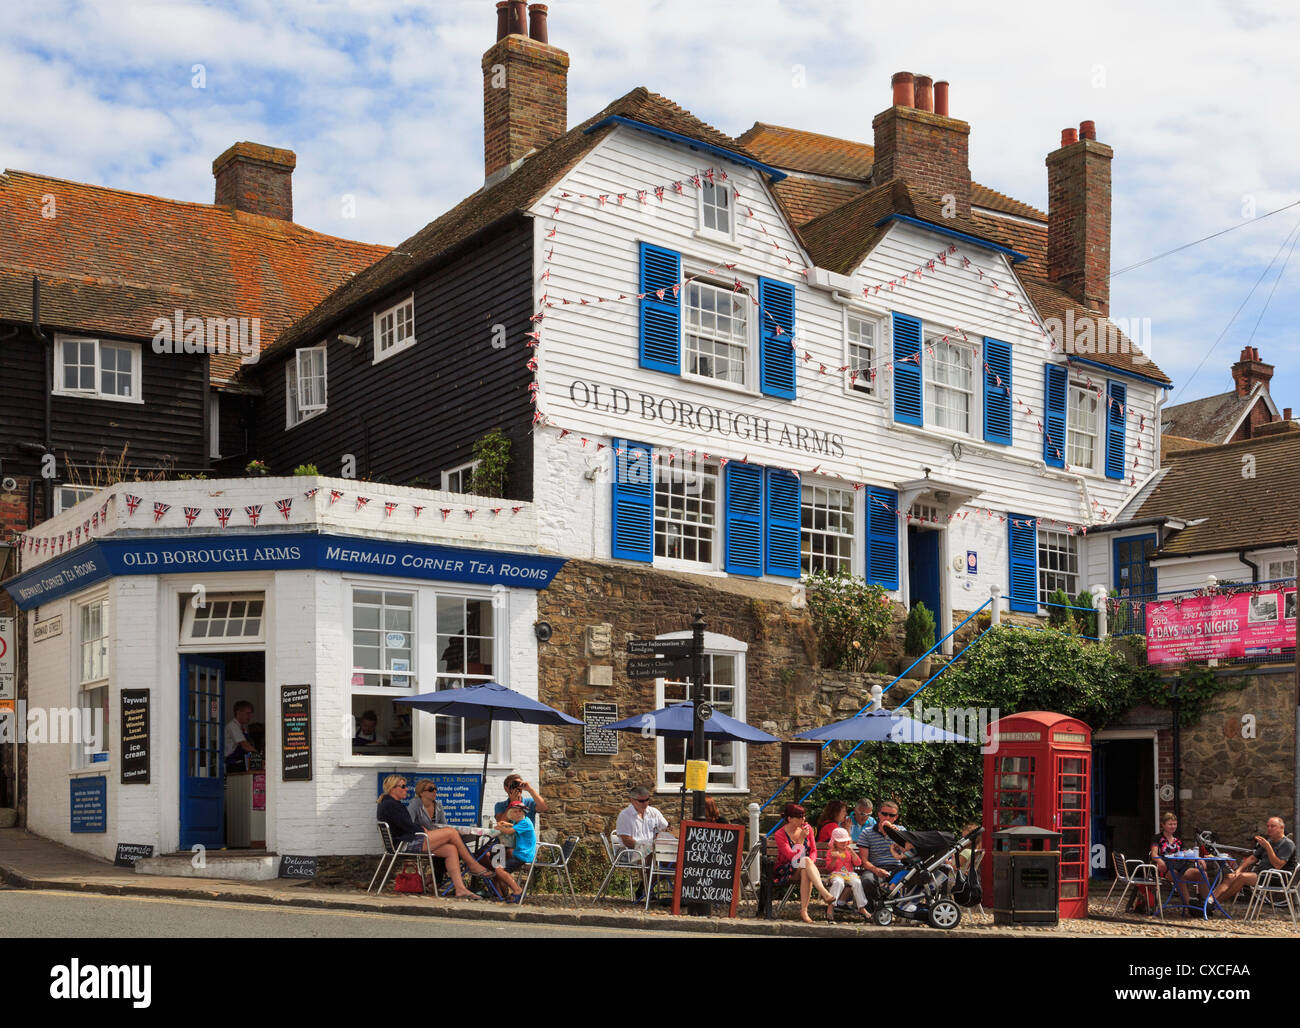 Old Borough Arms hotel and Mermaid Corner tea rooms with people sitting outside in Rye, East Sussex, England, UK, Stock Photo